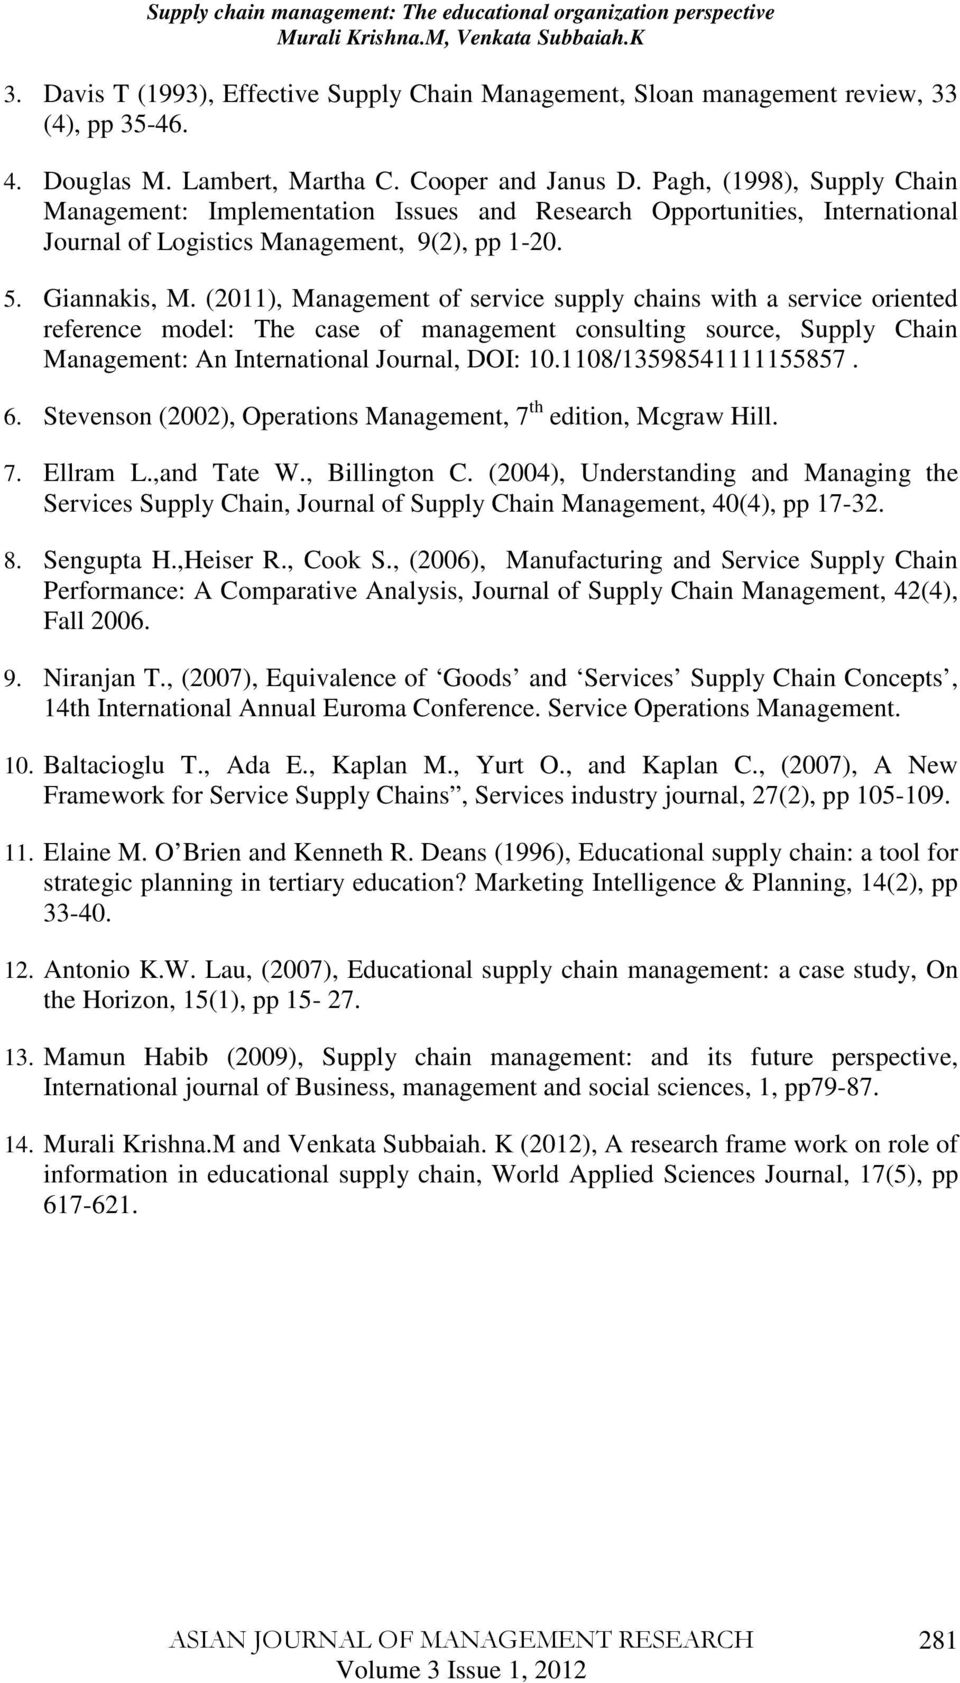 (2011), Management of service supply chains with a service oriented reference model: The case of management consulting source, Supply Chain Management: An International Journal, DOI: 10.